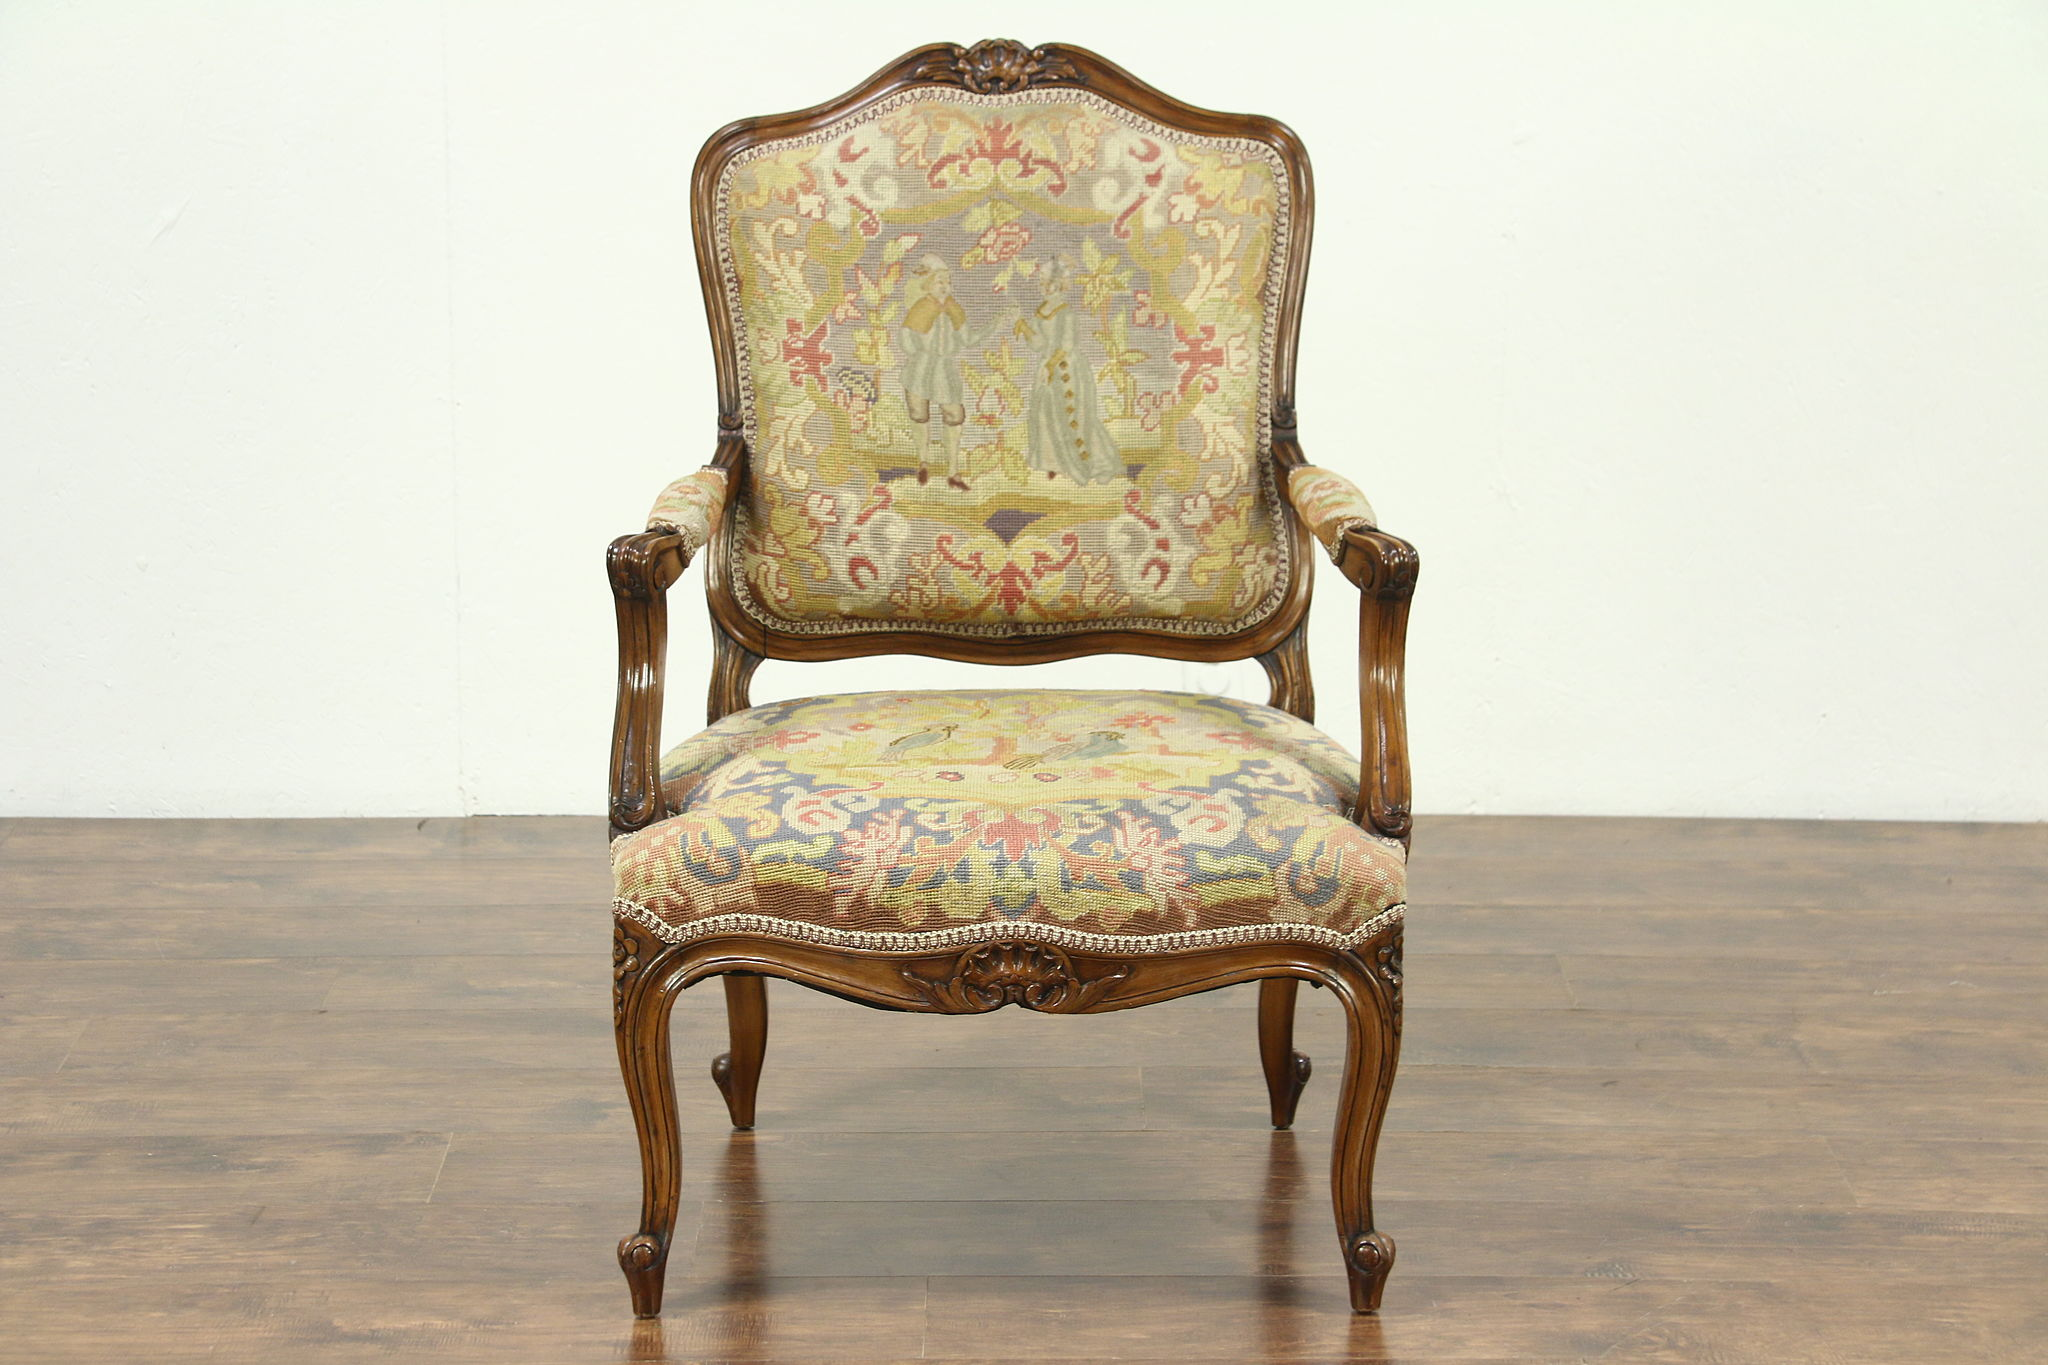 Antique Chair Sold Carved 1920 Antique Chair Needlepoint And Petit